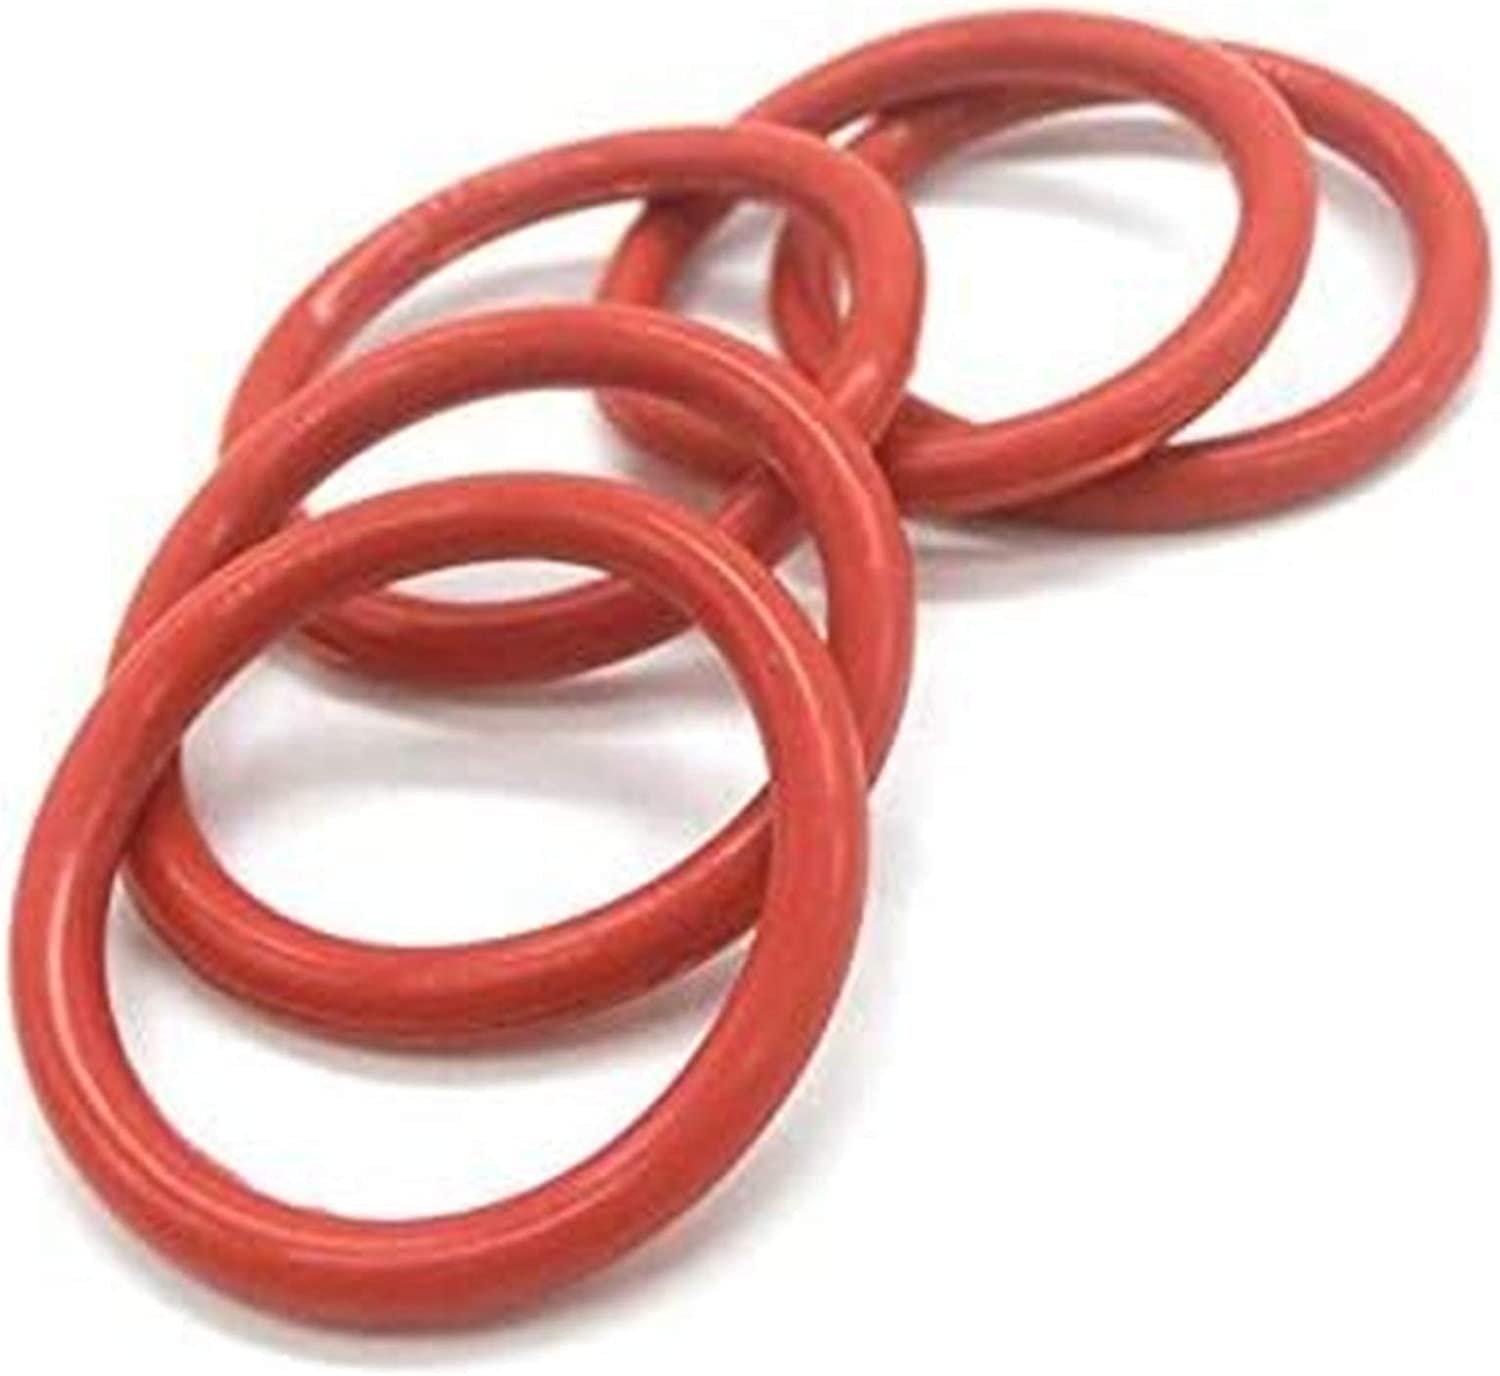 Mechanical Outlet SALE Kansas City Mall Parts Spring Washer 10pcs-Multiple specifications- 5m